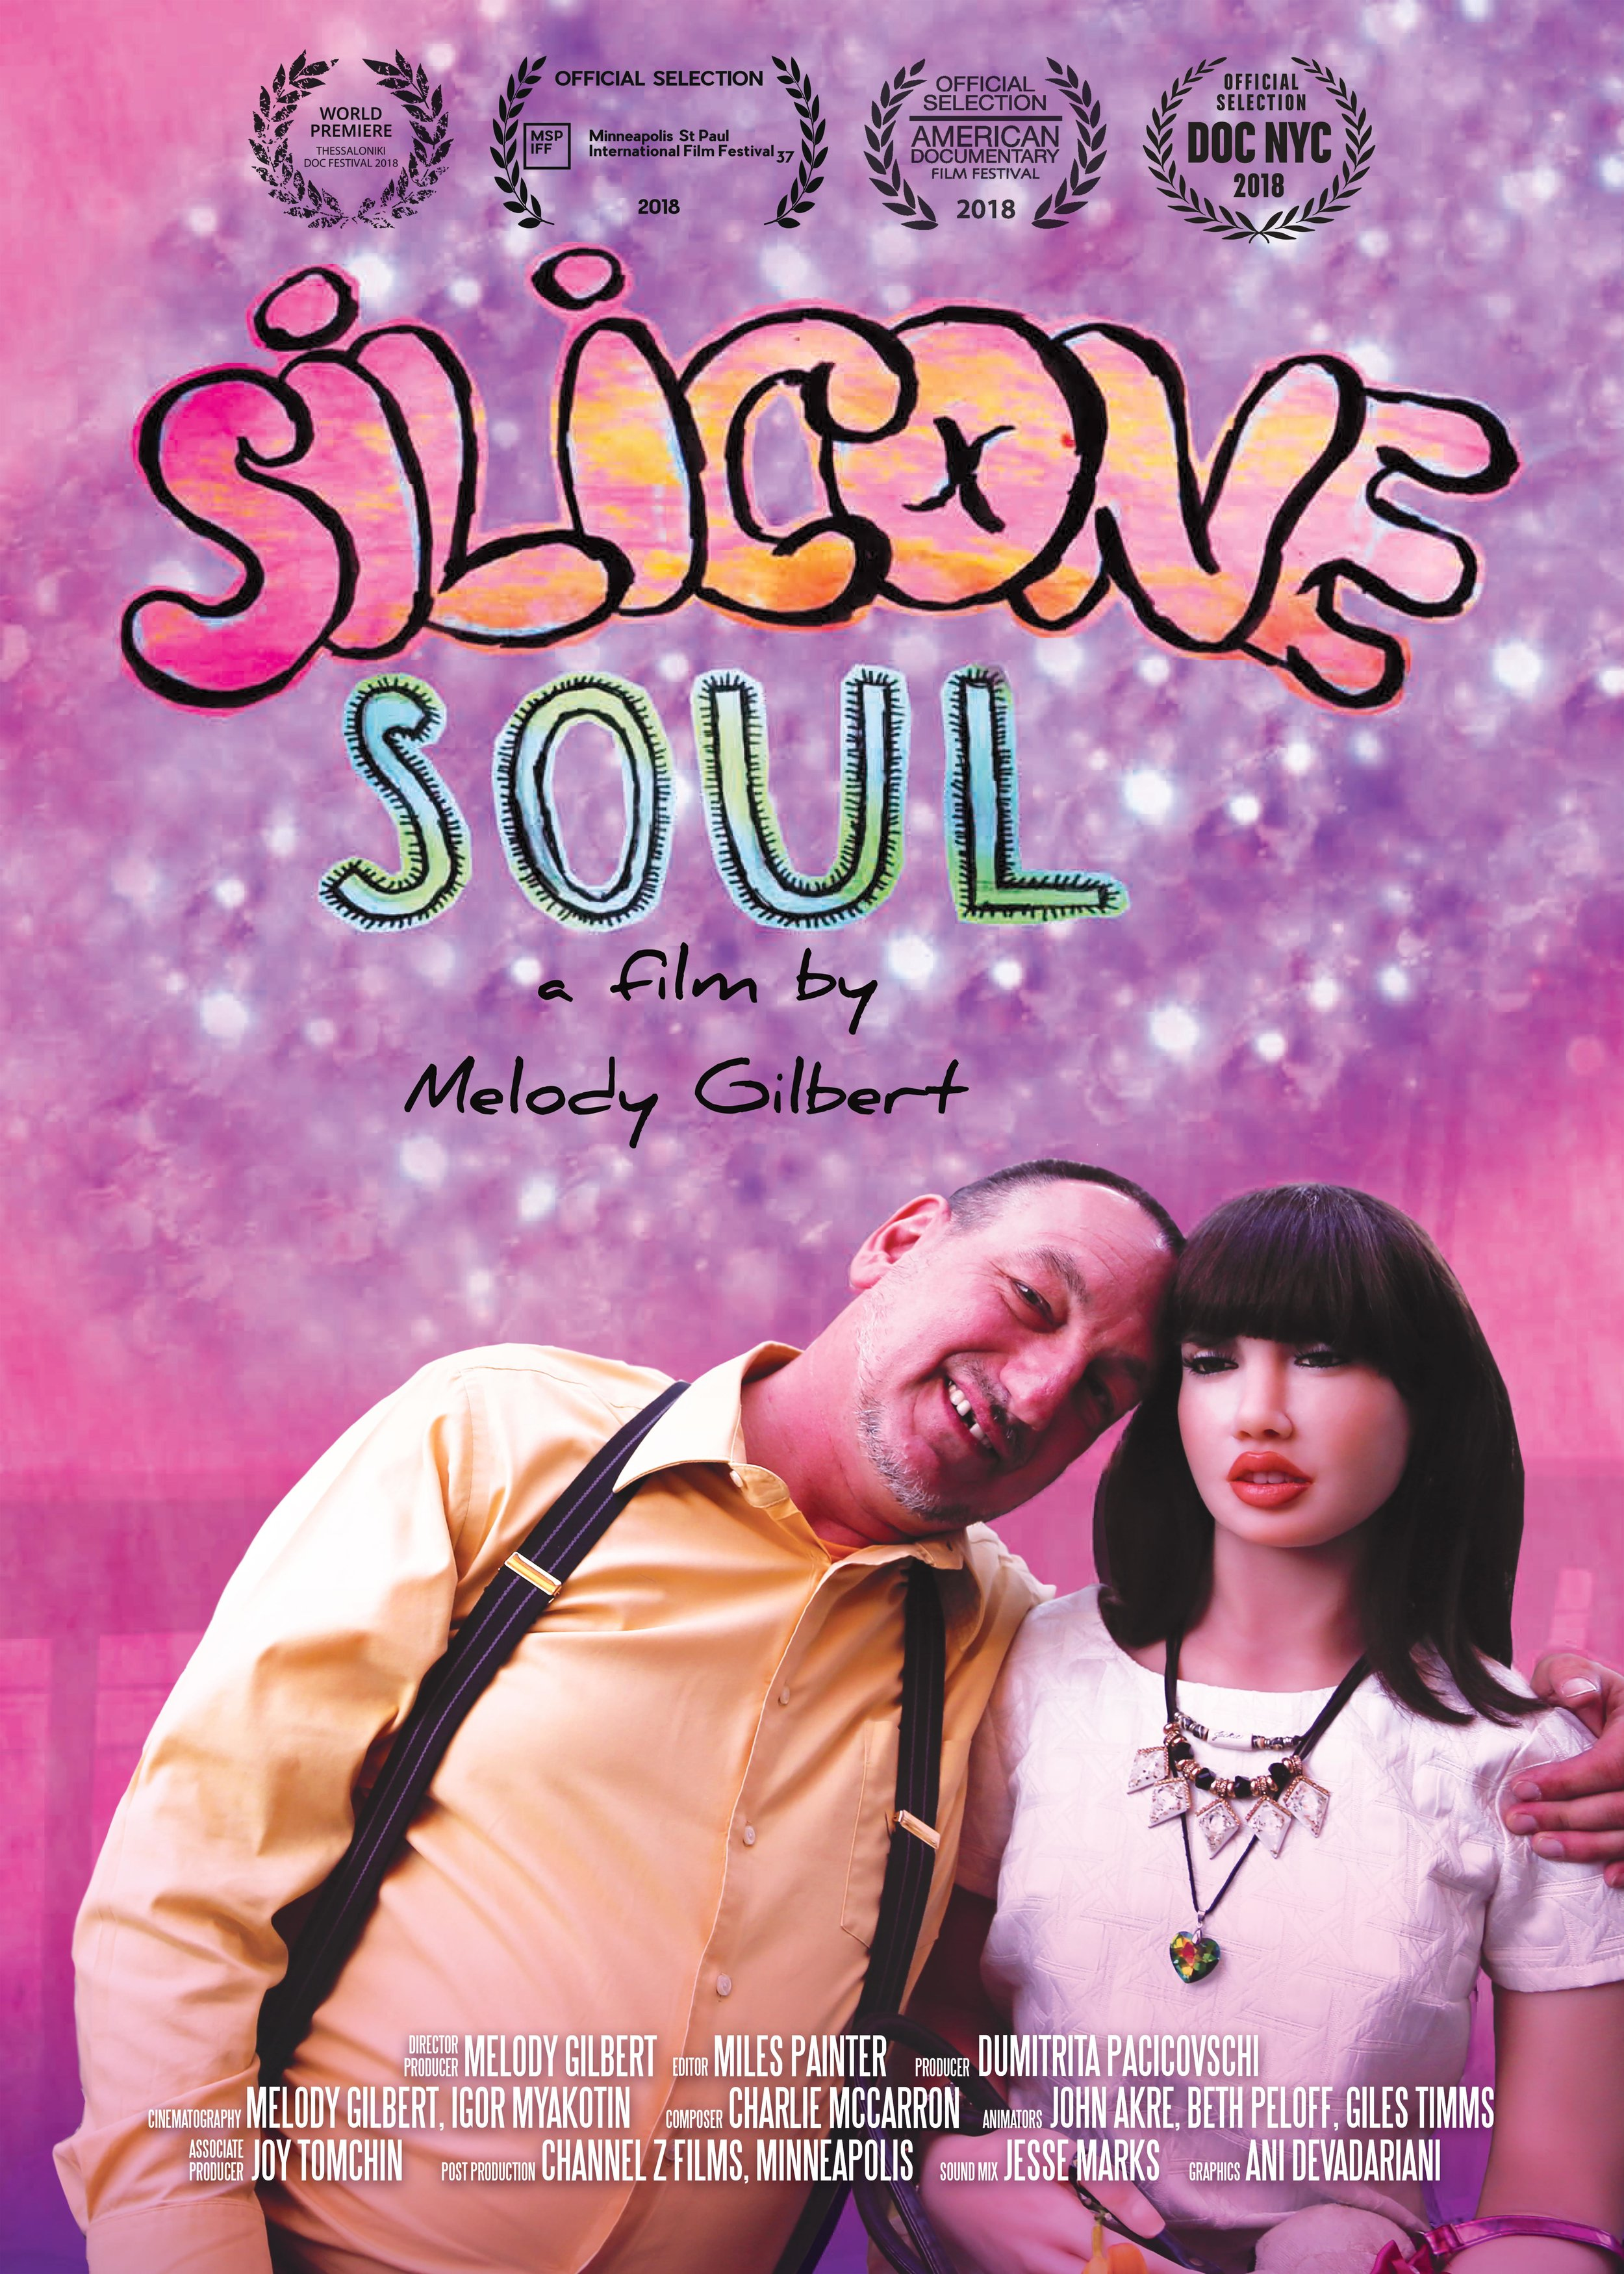 Silicone Soul - 2018, USA, 71 min, in EnglishSilicone Soul explores the emotional connection some people have to their lifelike synthetic companions and what that means for the future of human relationships. Ultimately, this is a film about love, loneliness, secrets and, perhaps, acceptance. The bonds shown are diverse and layered: from romantic relationships, to friendships, to a recreation of the love between mother and child. Silicone Soul does not allow for its subjects to be easily labeled or judged. Instead, the film is a collection of resoundingly human stories that reflect universal themes—the desire for love, compassion and communication. Who are we to judge who…or what…people choose to love?